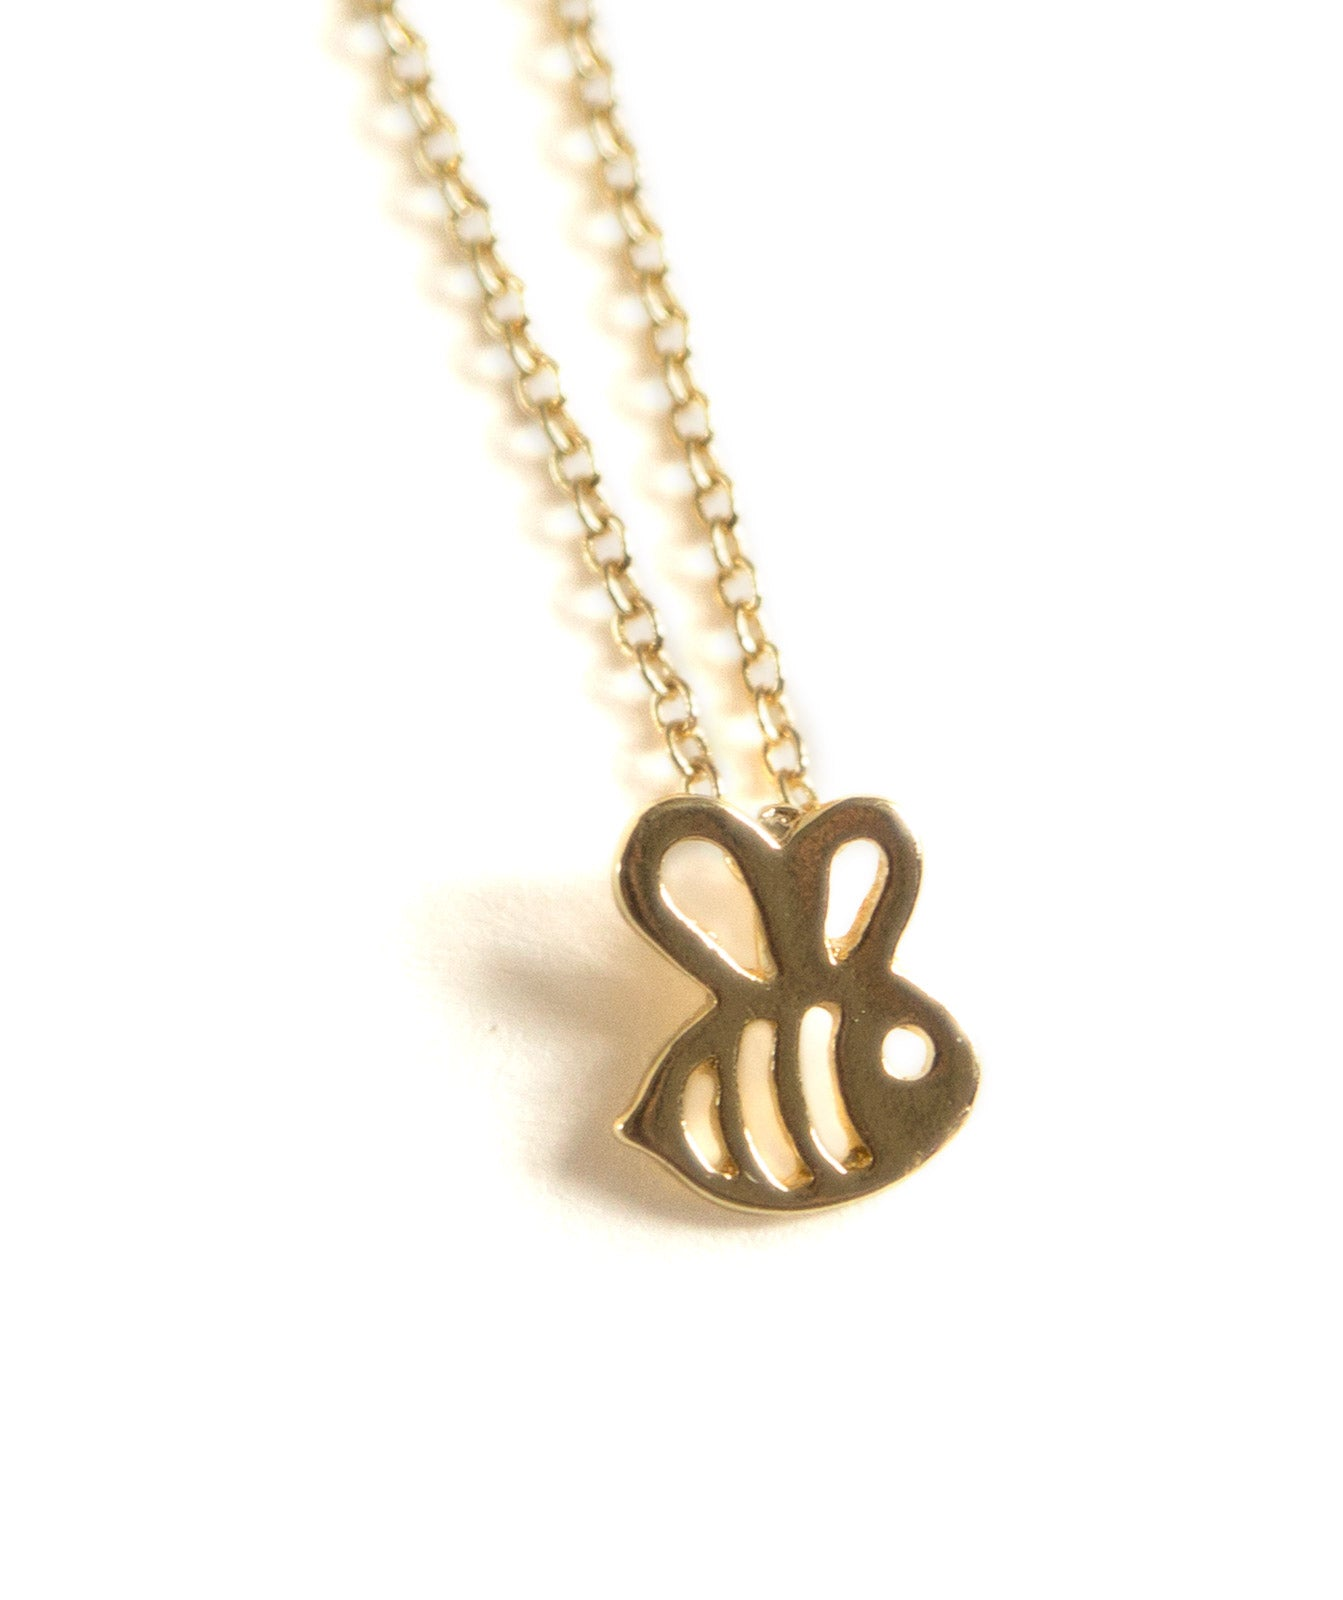 Bee pendant necklace well done goods bee gold pendant necklace well done goods aloadofball Images